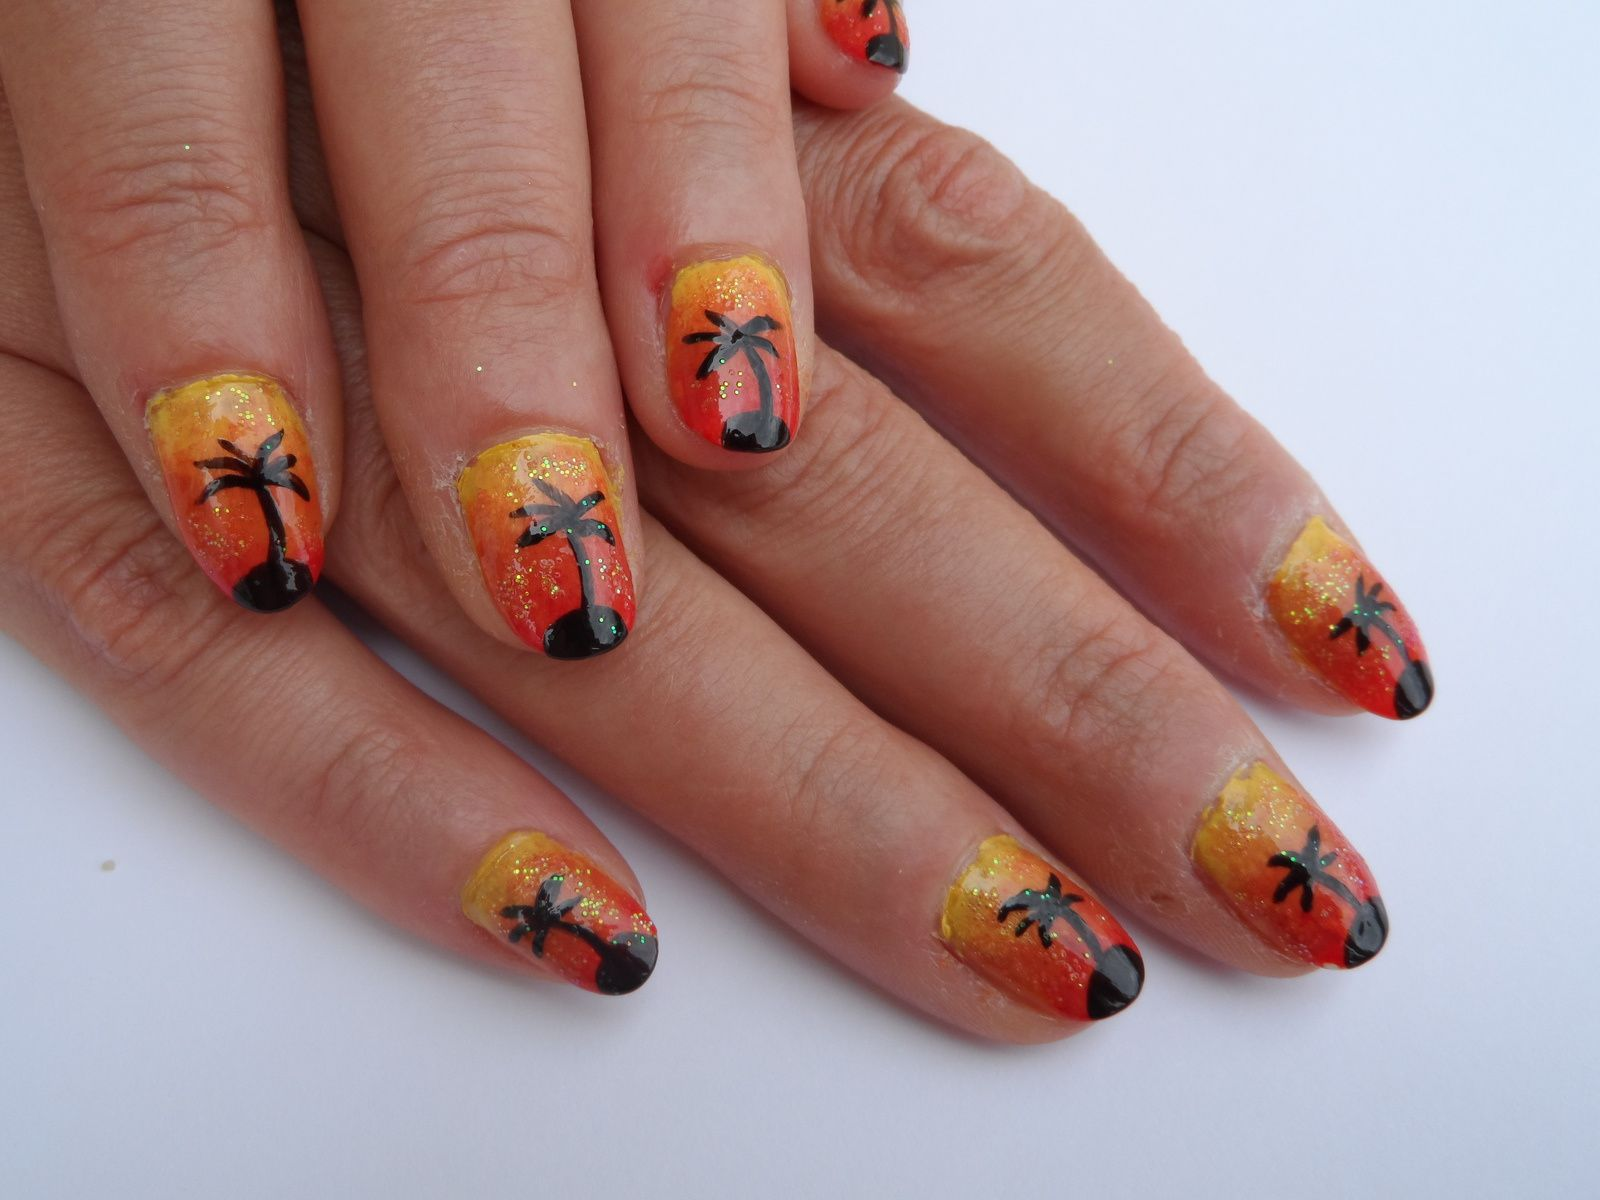 nail art couch de soleil d grad de jaune orange rouge avec nail art palmier nail art. Black Bedroom Furniture Sets. Home Design Ideas